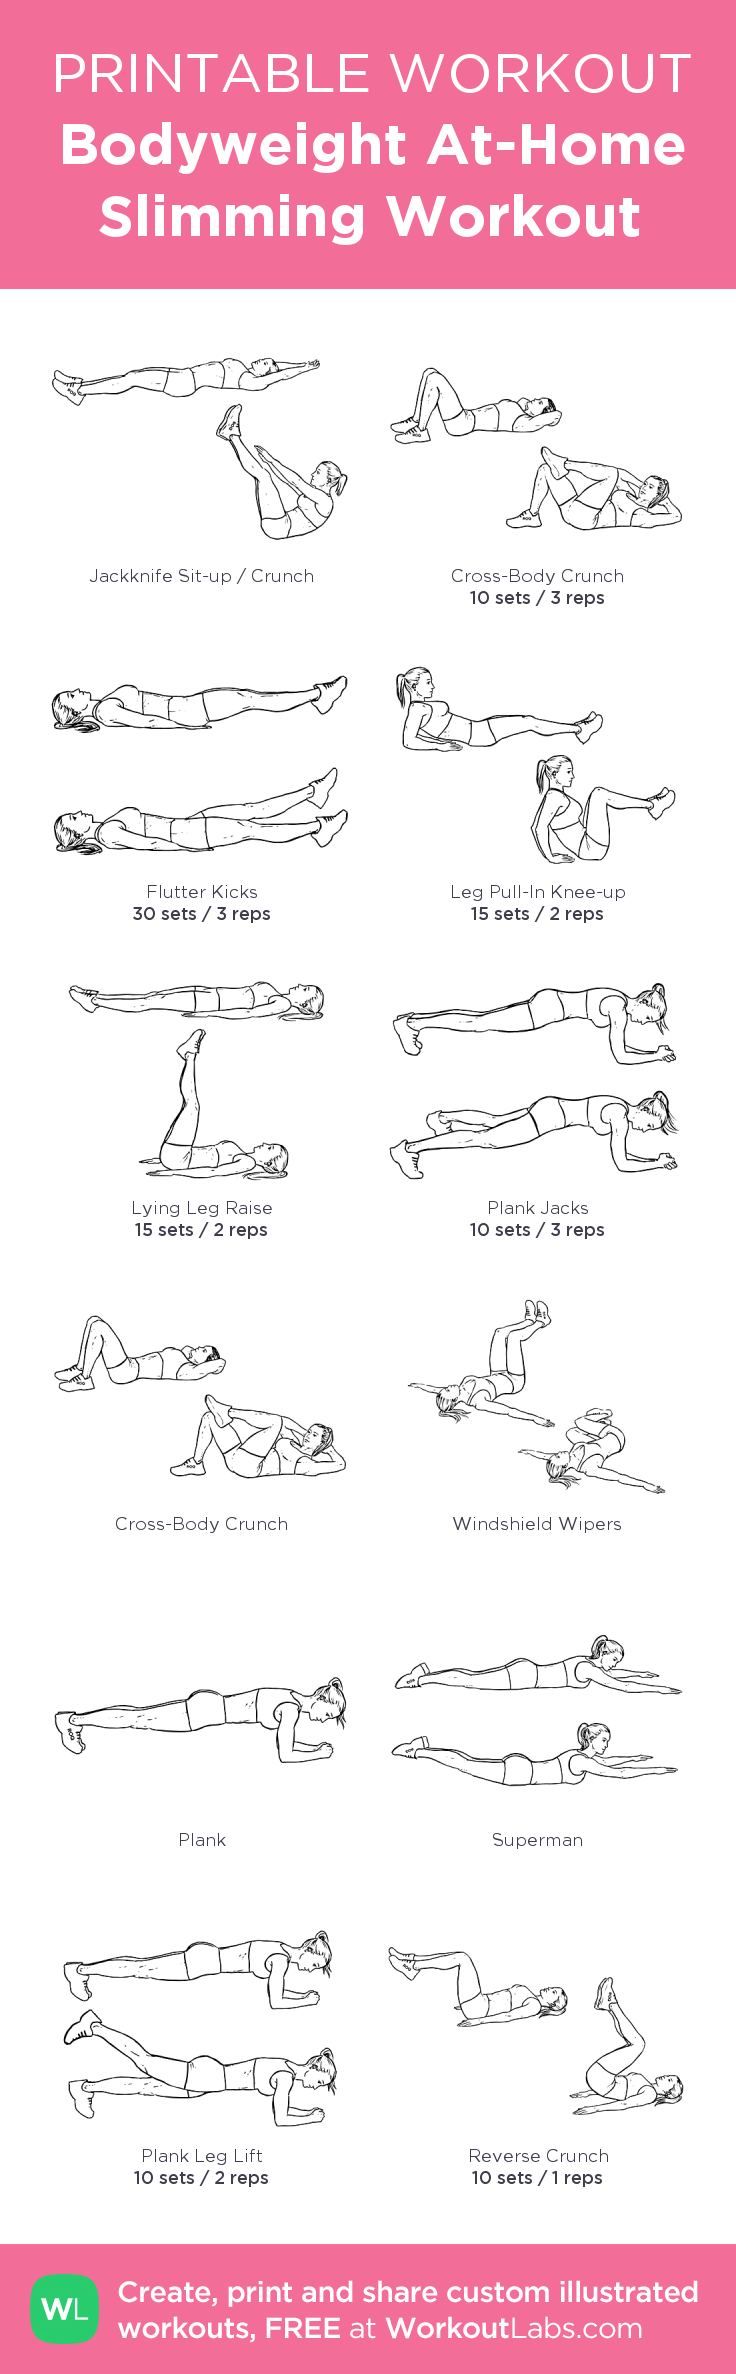 Bodyweight At-Home Slimming Workout: my custom printable workout by @WorkoutLabs #workoutlabs #customworkout